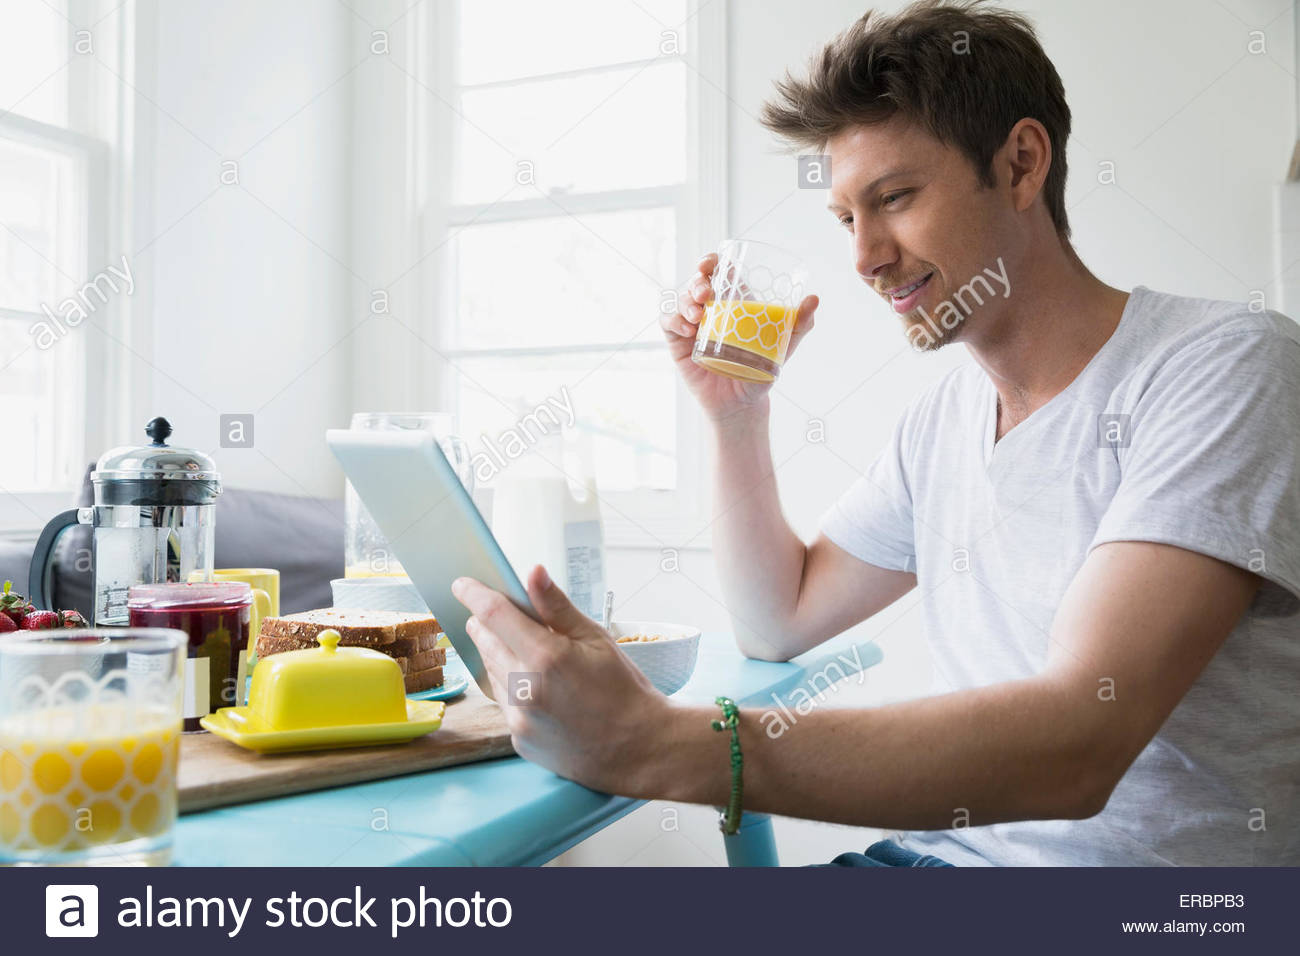 Man drinking orange juice and using digital tablet - Stock Image